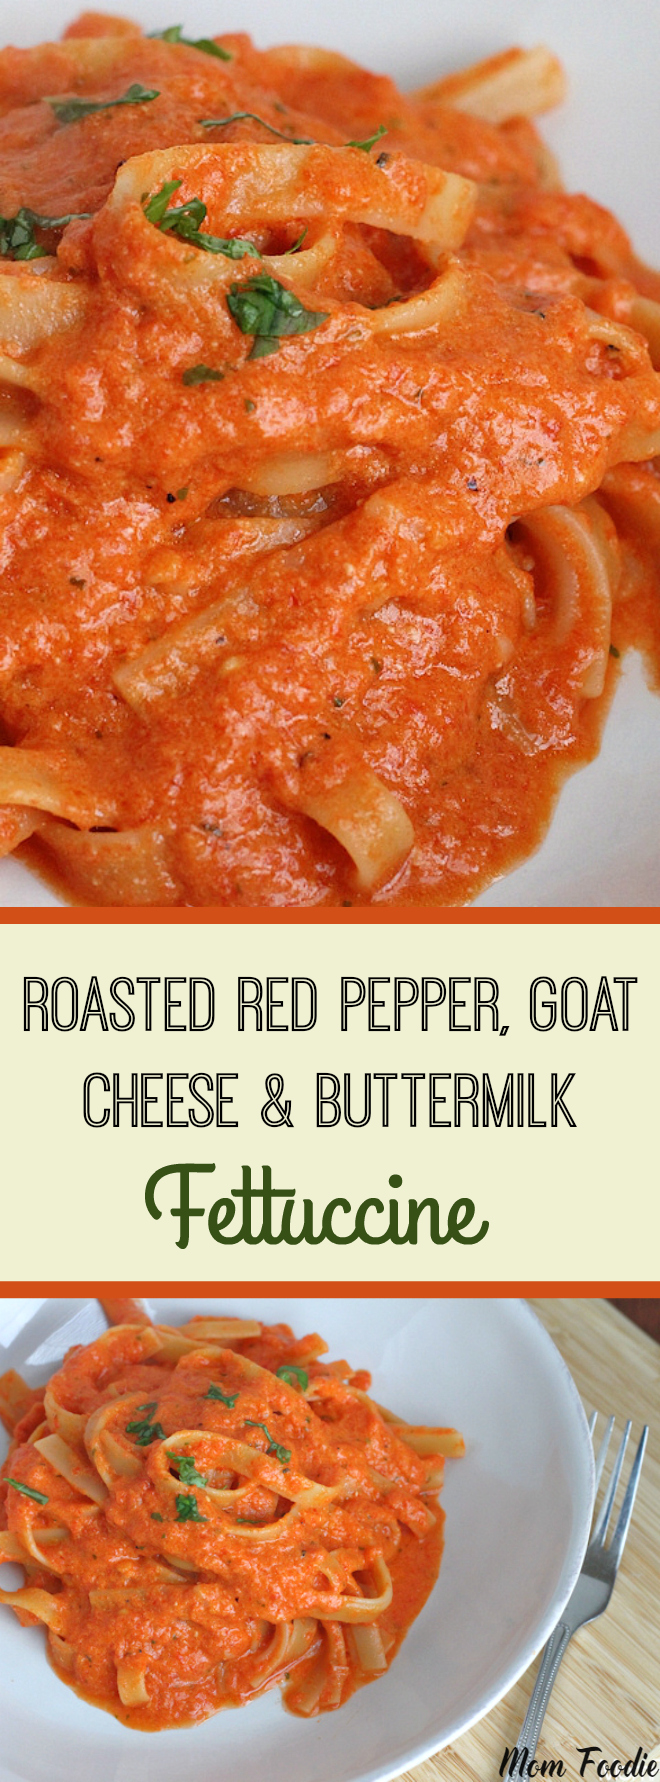 Roasted Red Pepper, Goat Cheese & Buttermilk Sauce Fettuccine